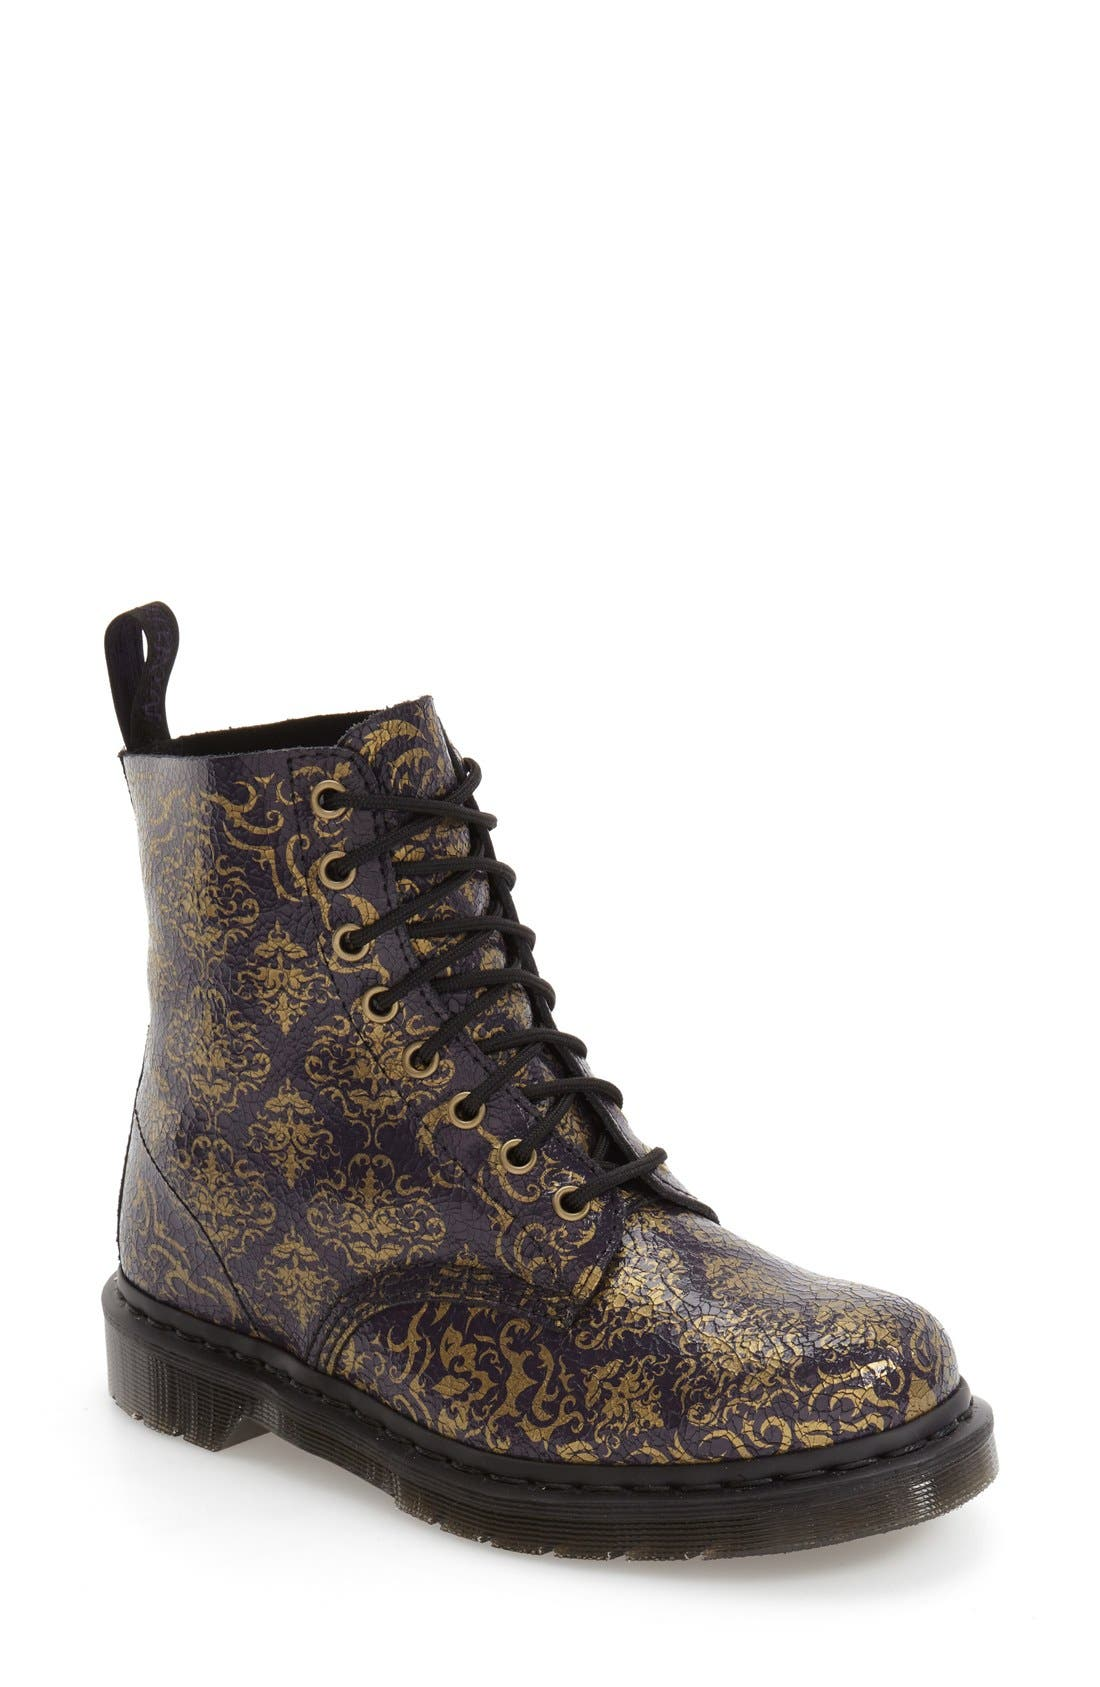 Alternate Image 1 Selected - Dr. Martens 'Pascal' Boot (Women)